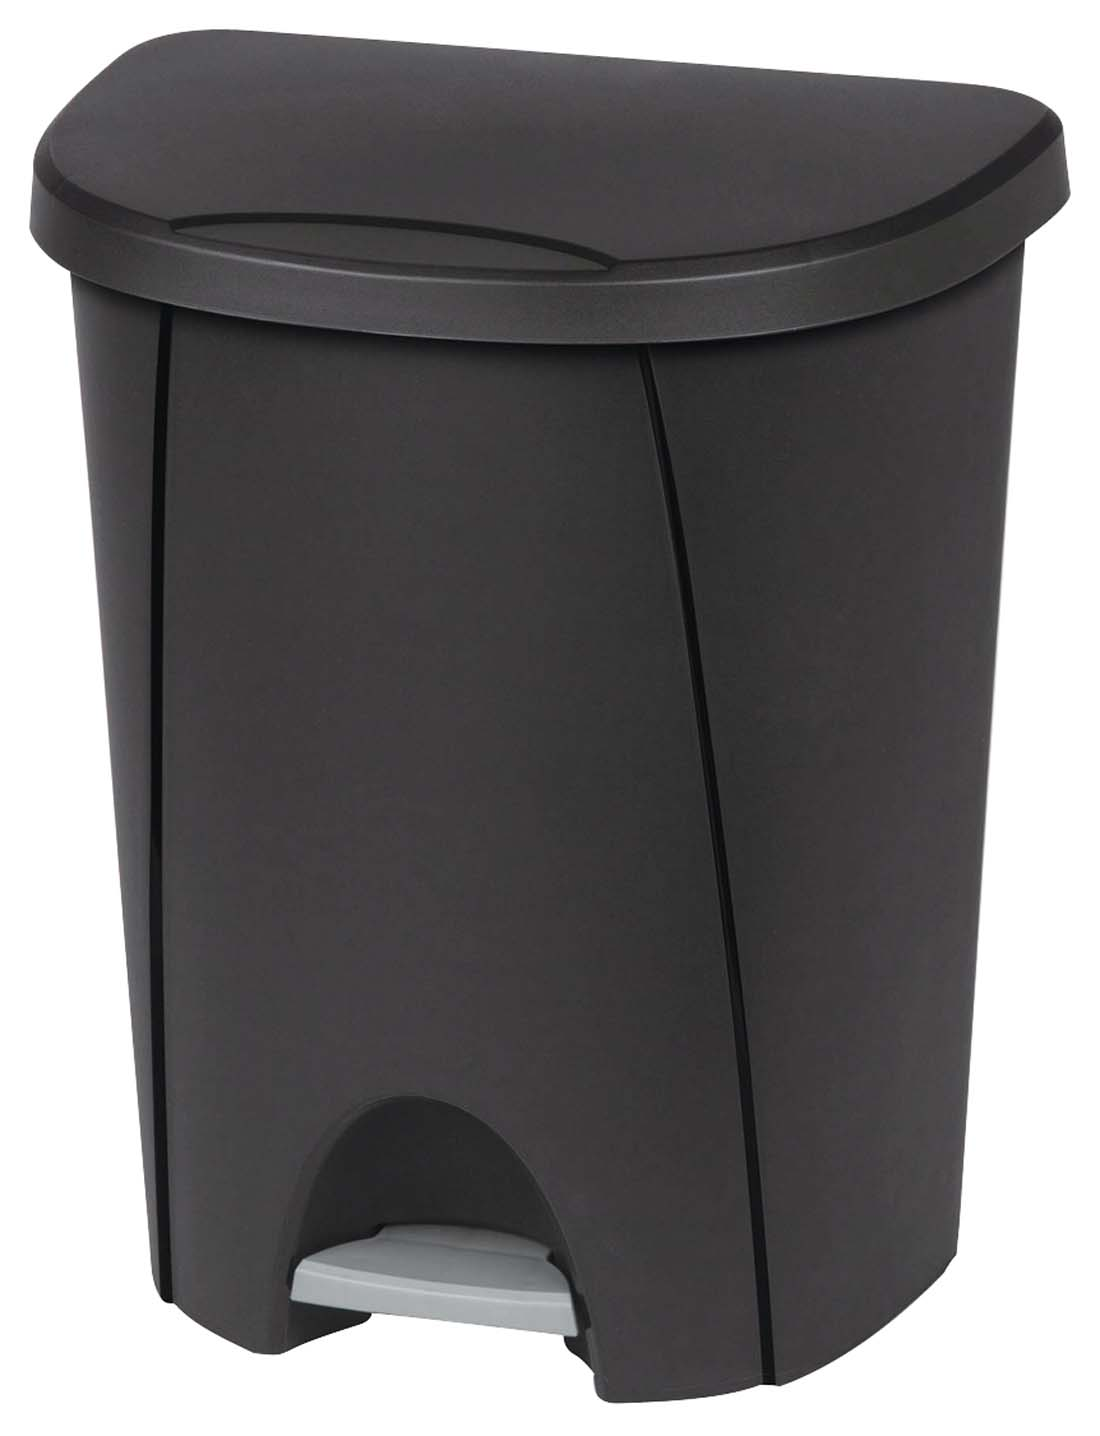 View STERILITE WASTE BASKET 26 QUART WITH LID AND STEP OPENER BLACK **MADE IN USA**